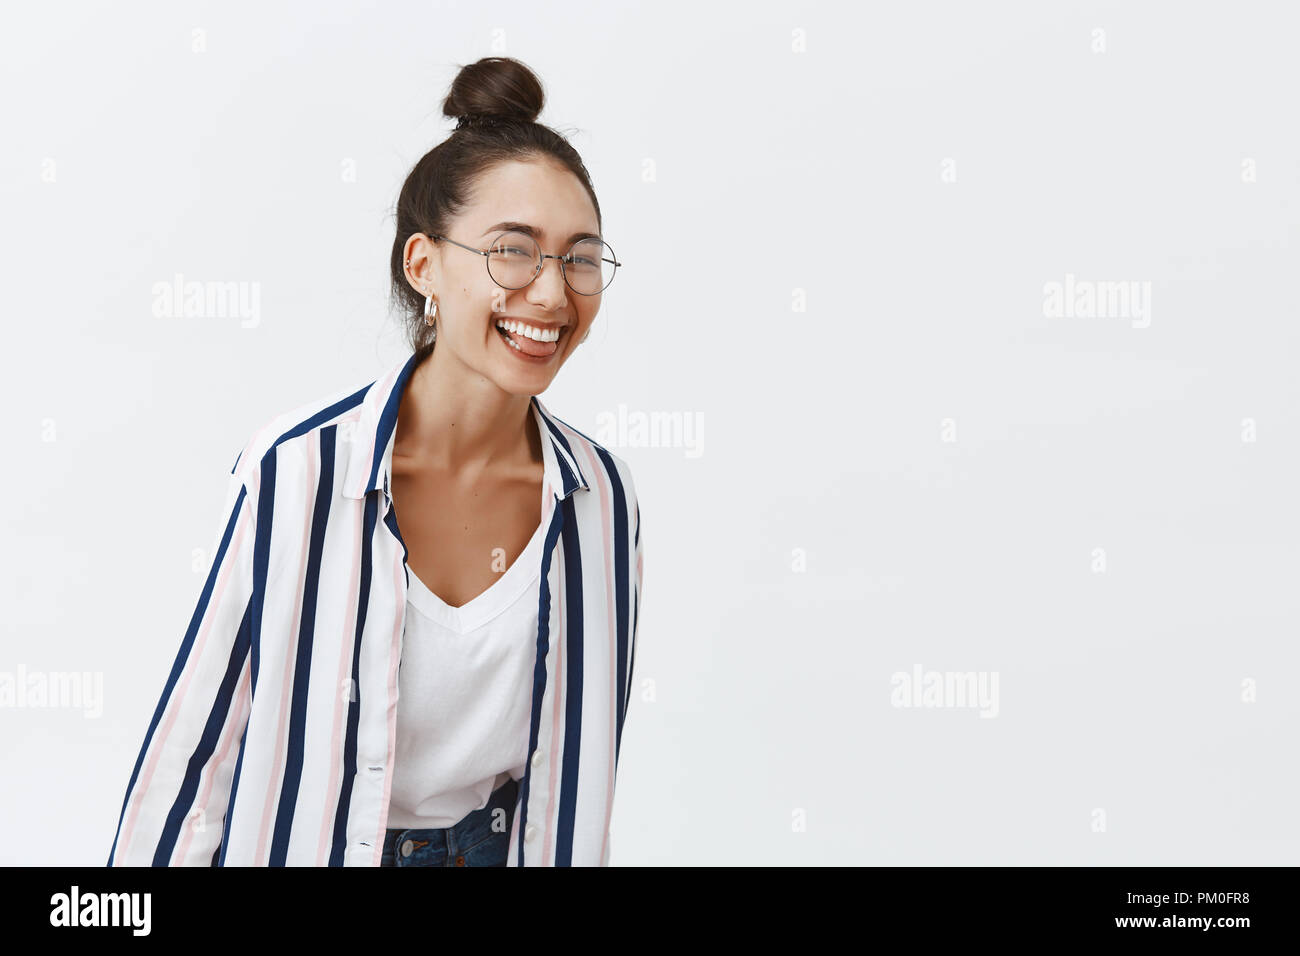 Girl just wanna have fun. Studio shot of charming playful woman leading active and happy lifestyle, bending towards camera while laughing over funny joke, standing in trendy outfit and glasses Stock Photo